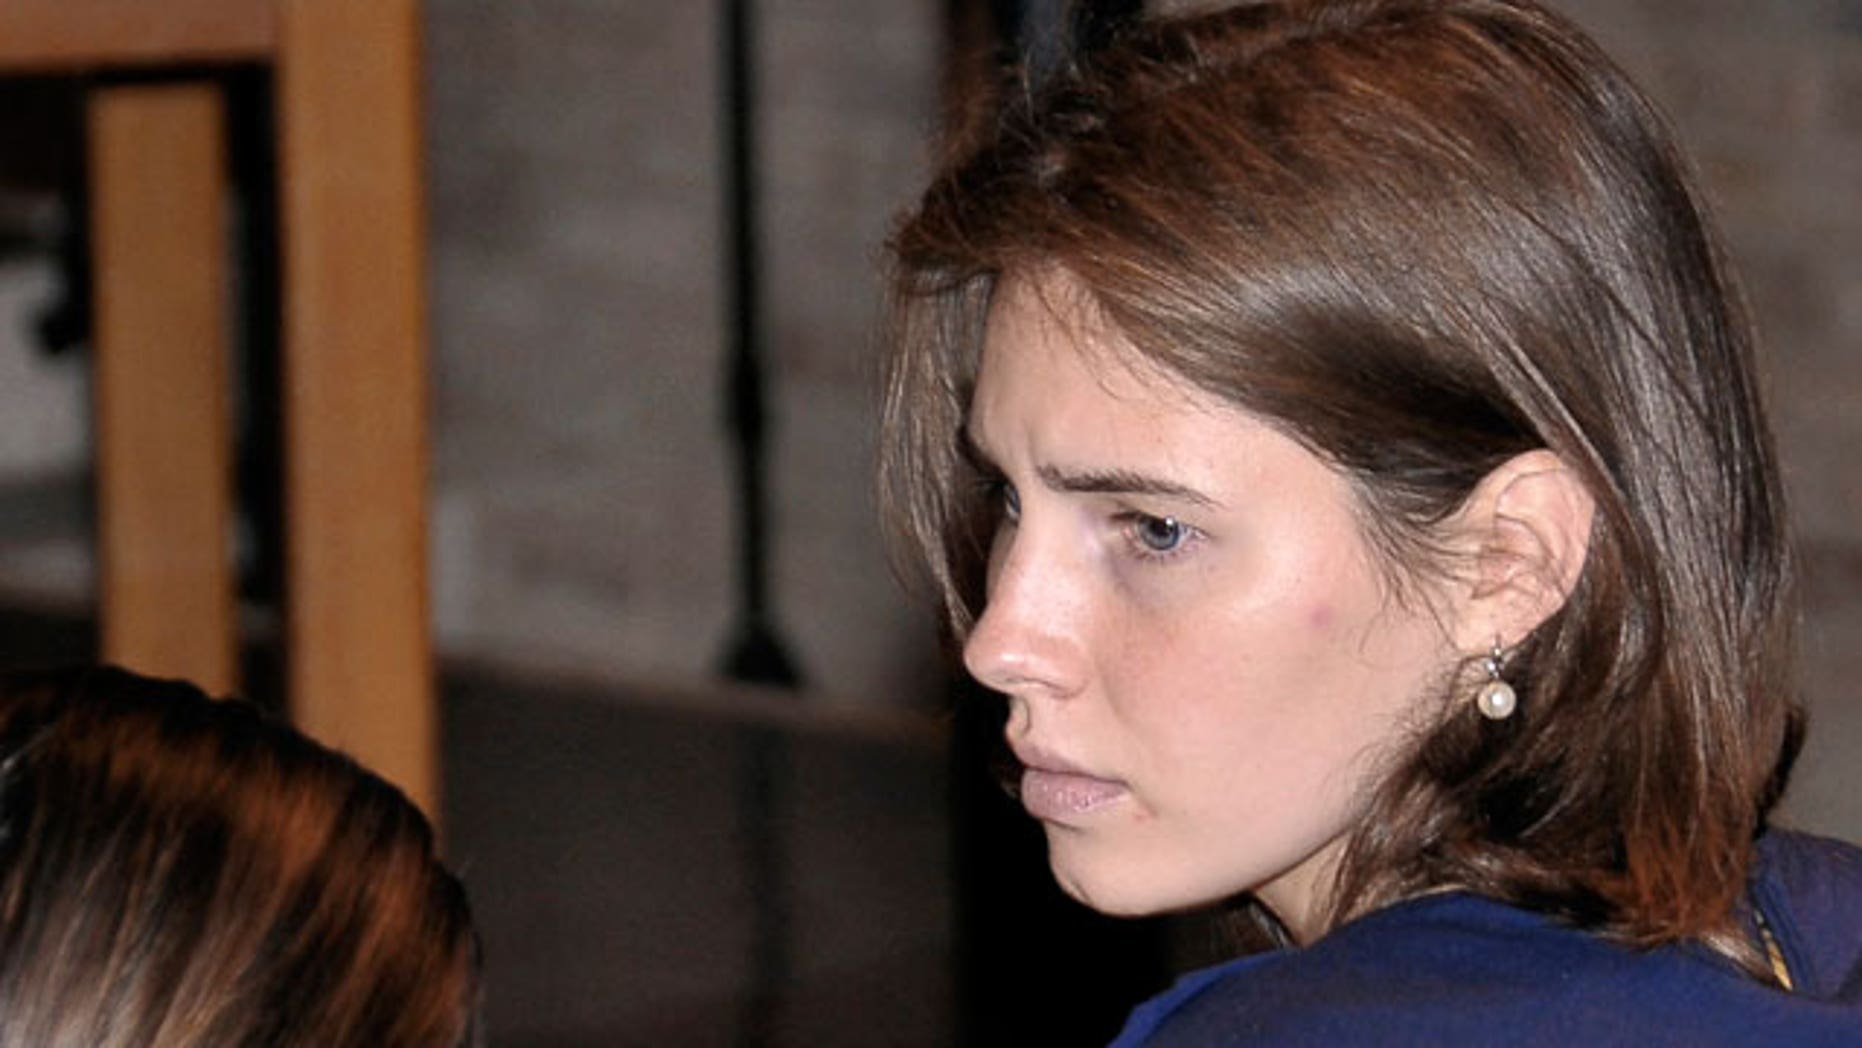 Amanda Knox looks on during her appeal trial in Perugia, Italy, Saturday, June 18, 2011. Knox was convicted of murdering her British roommate in Perugia, Meredith Kercher, and sentenced to 26 years in prison. Her co-defendant and ex-boyfriend Raffaele Sollecito was also convicted and sentenced to 25 years. They both deny wrongdoing and have appealed the 2009 verdict.